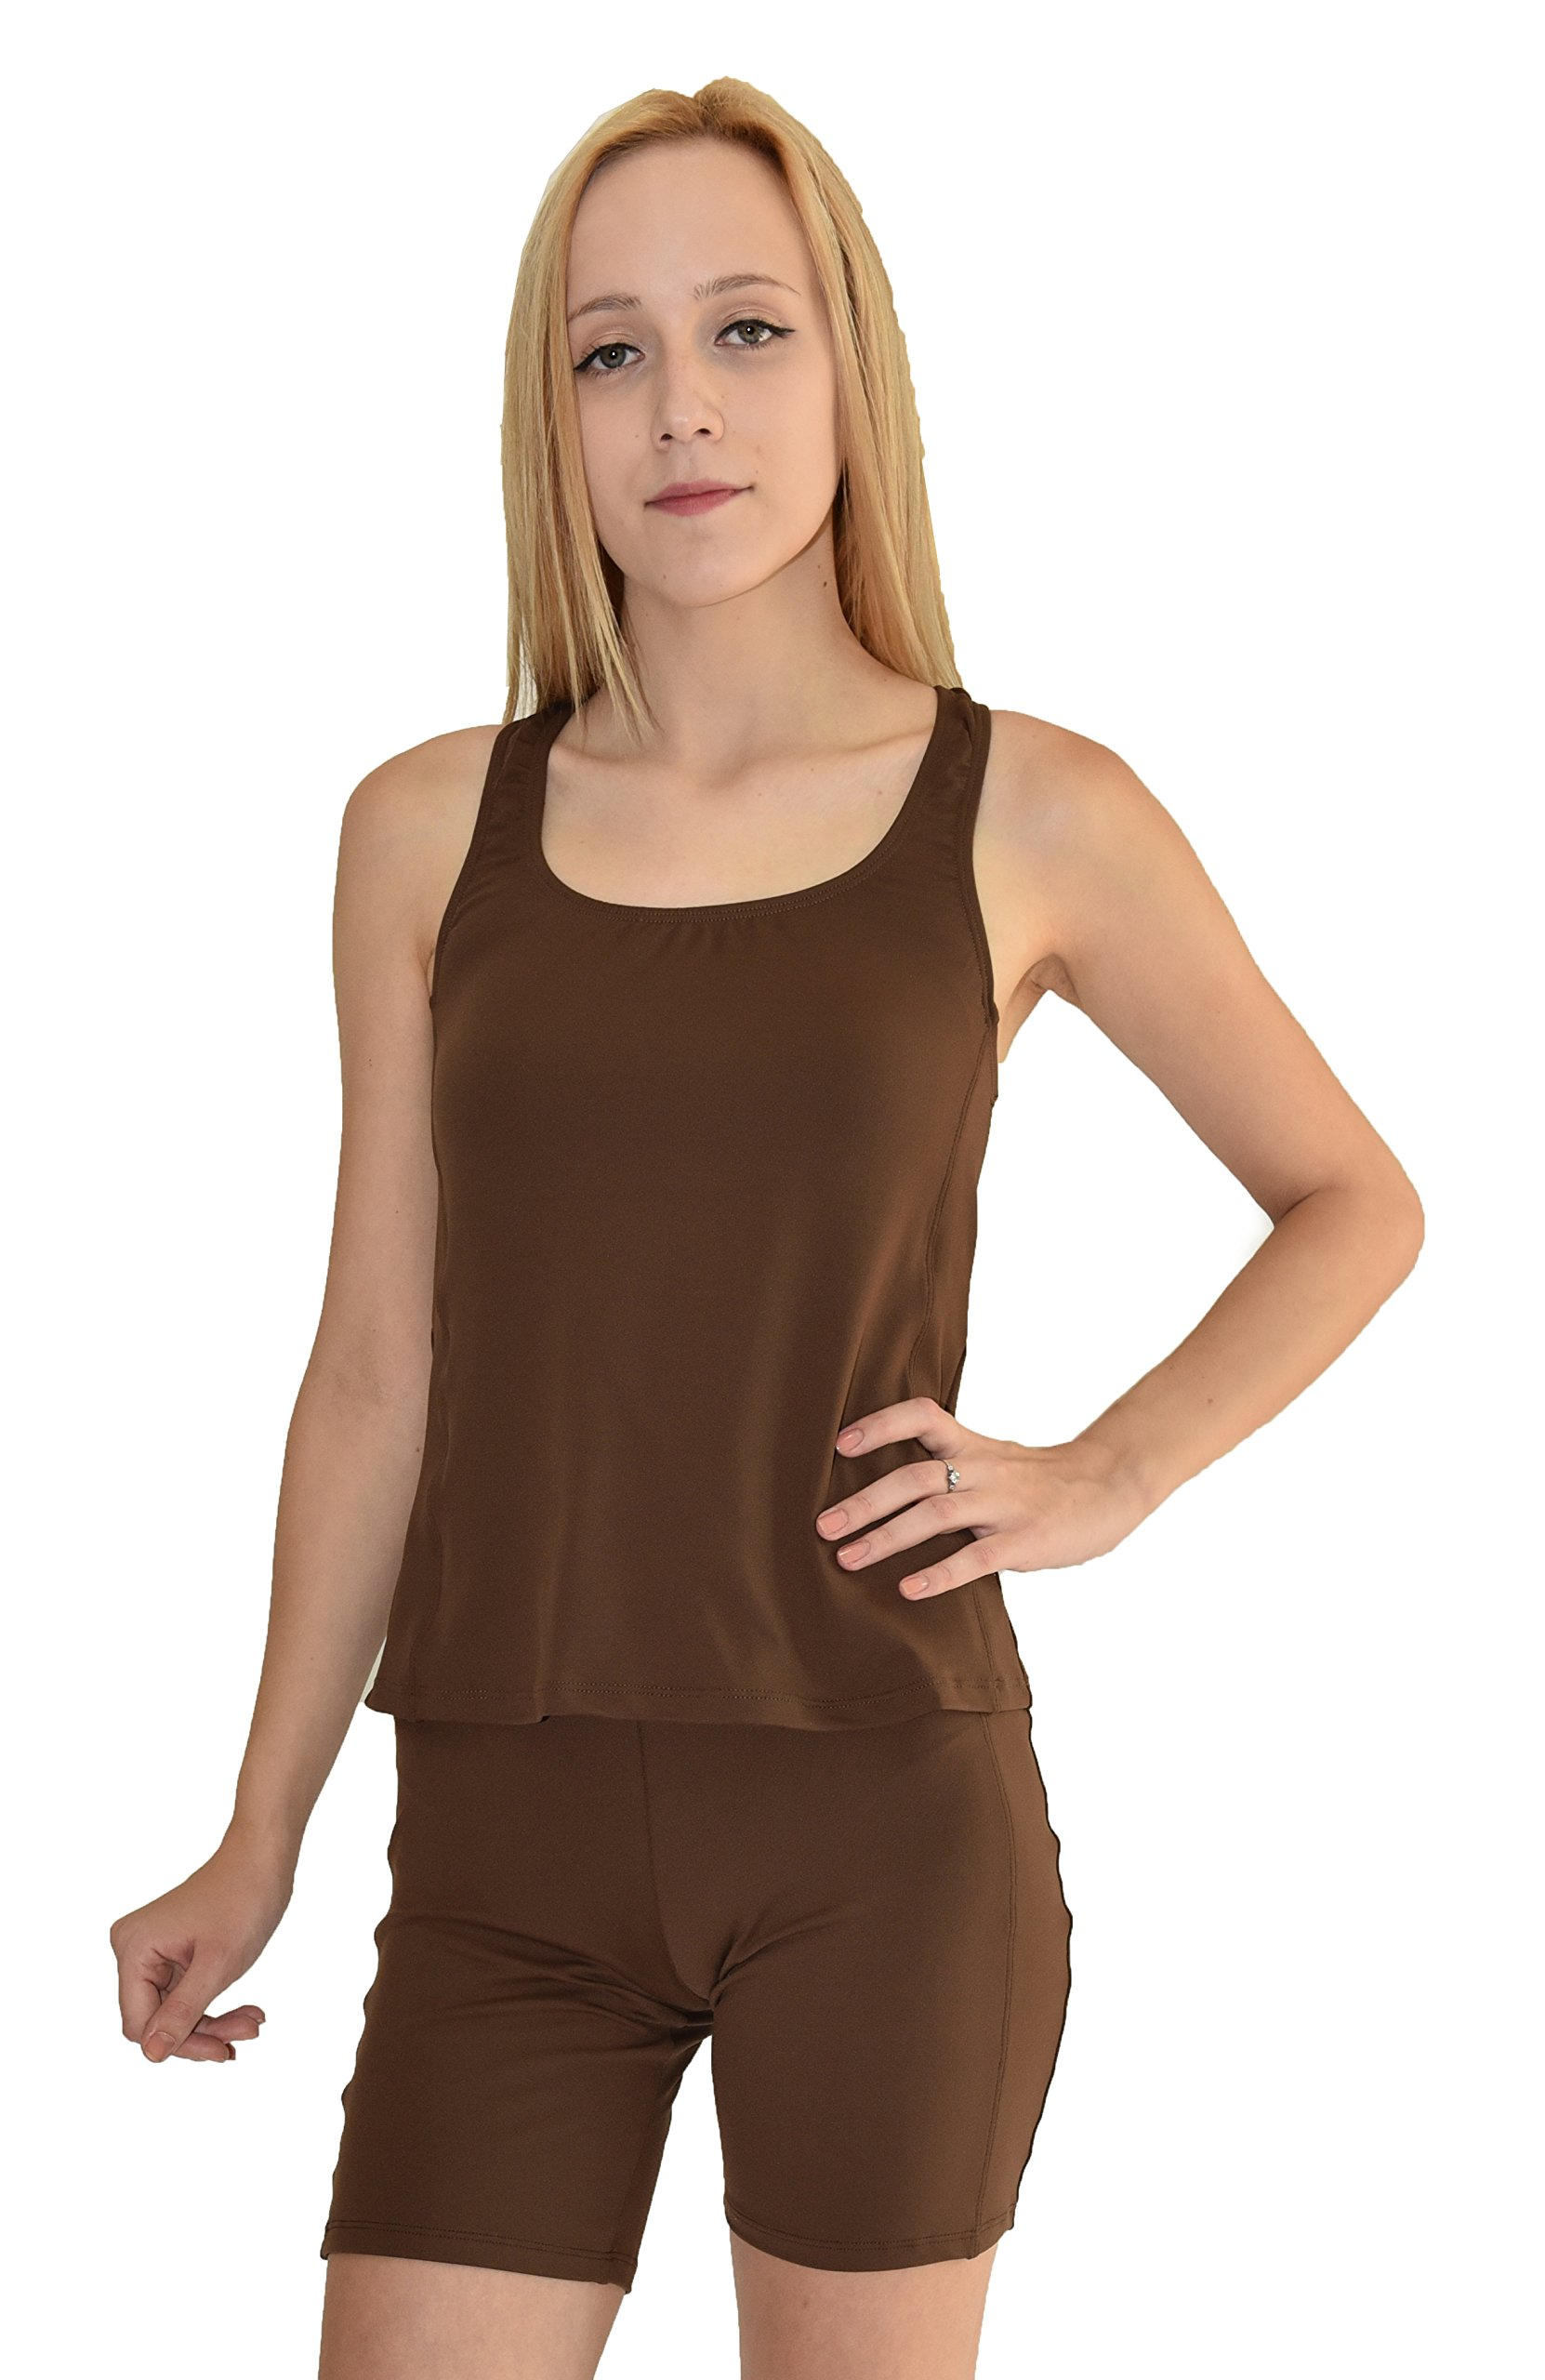 Private Island Hawaii UV Women Rash Guard Swim Yoga Active Workout Tankini Top (XL, Brown-YTY) by Private Island